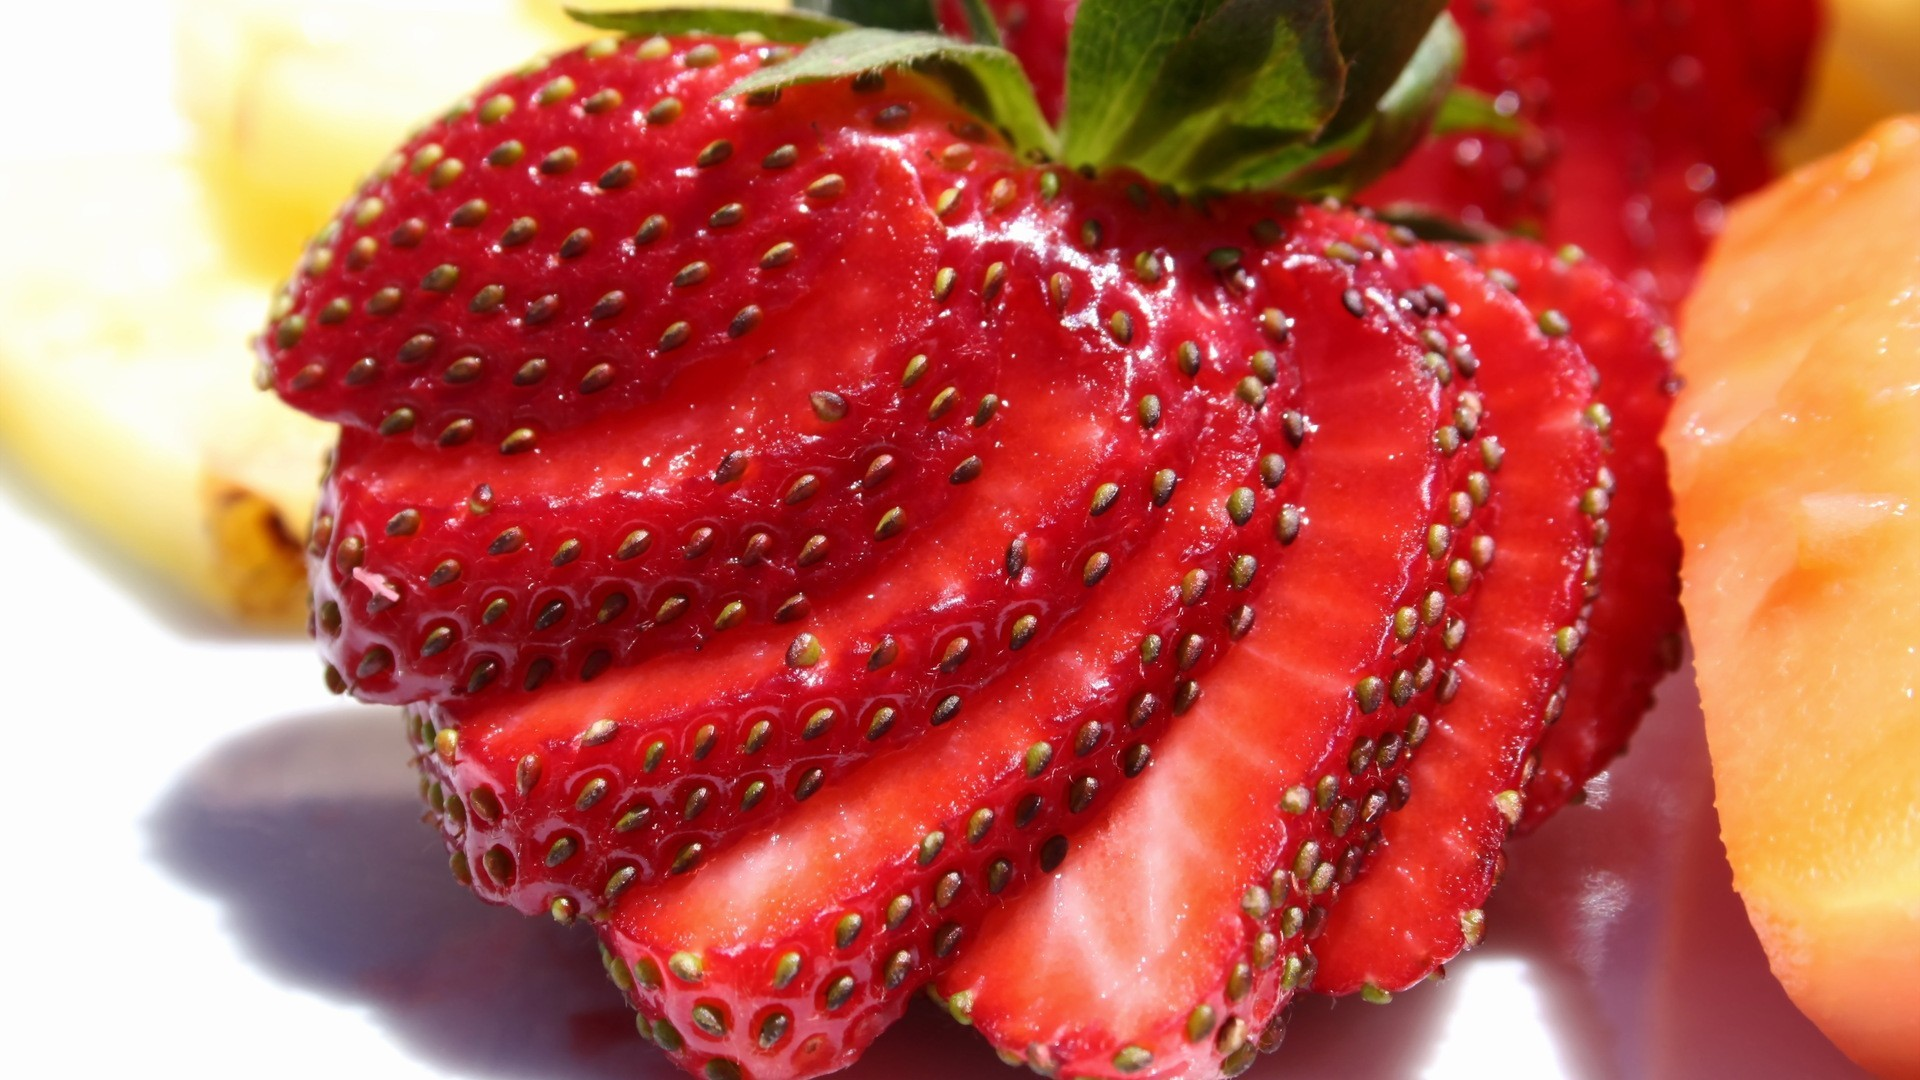 close-up fruits food strawberries HD Wallpaper